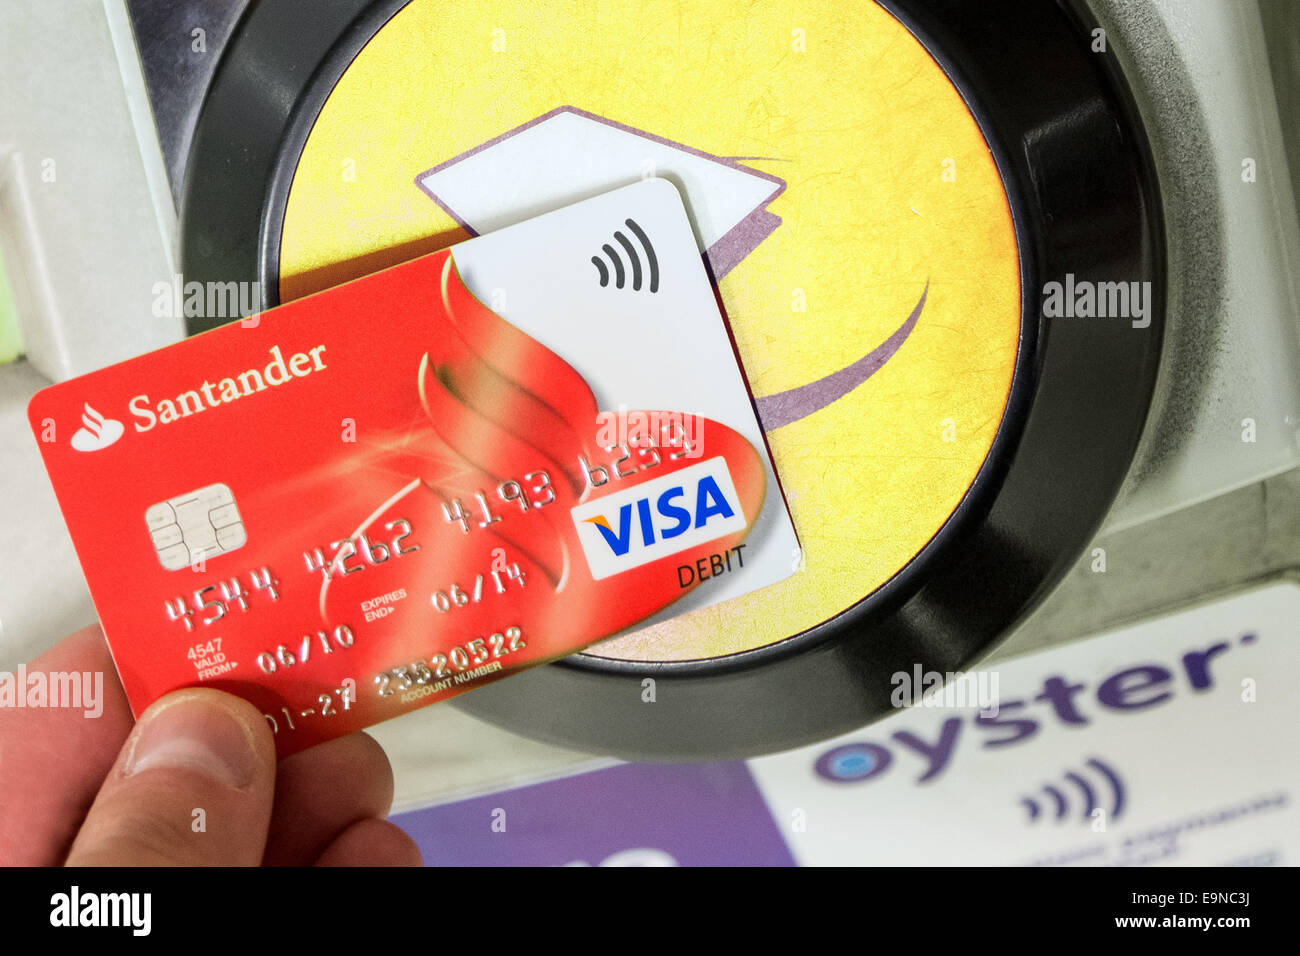 how to get barclays contactless debit card